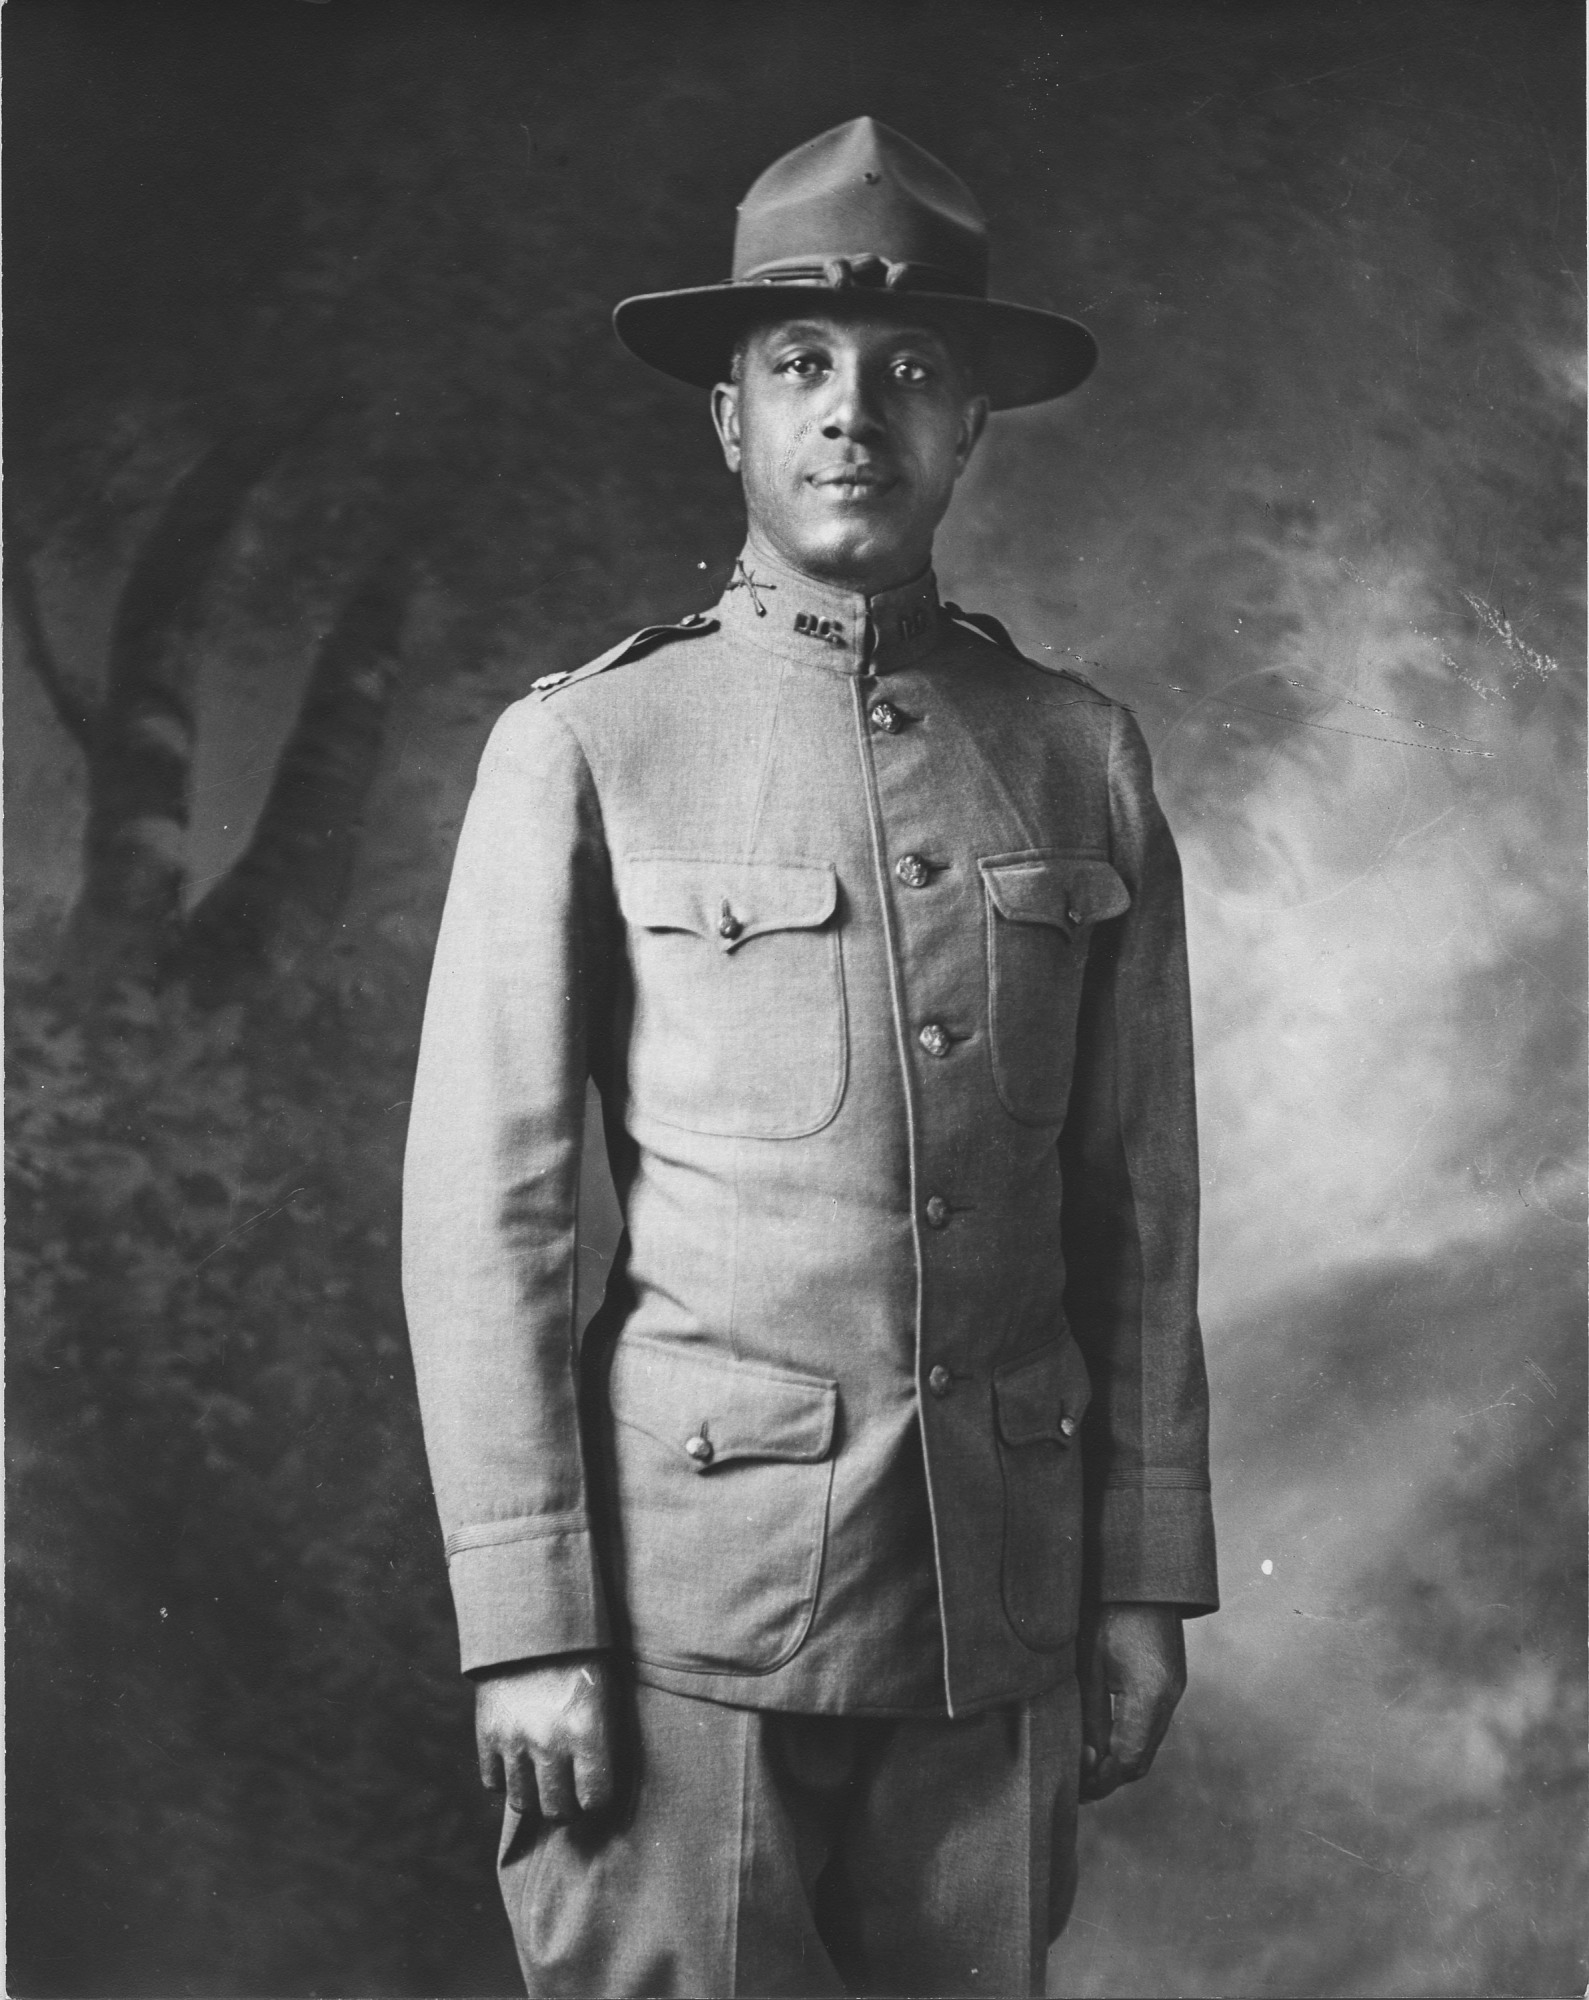 images for Soldier in World War I uniform with hat : photoprint.